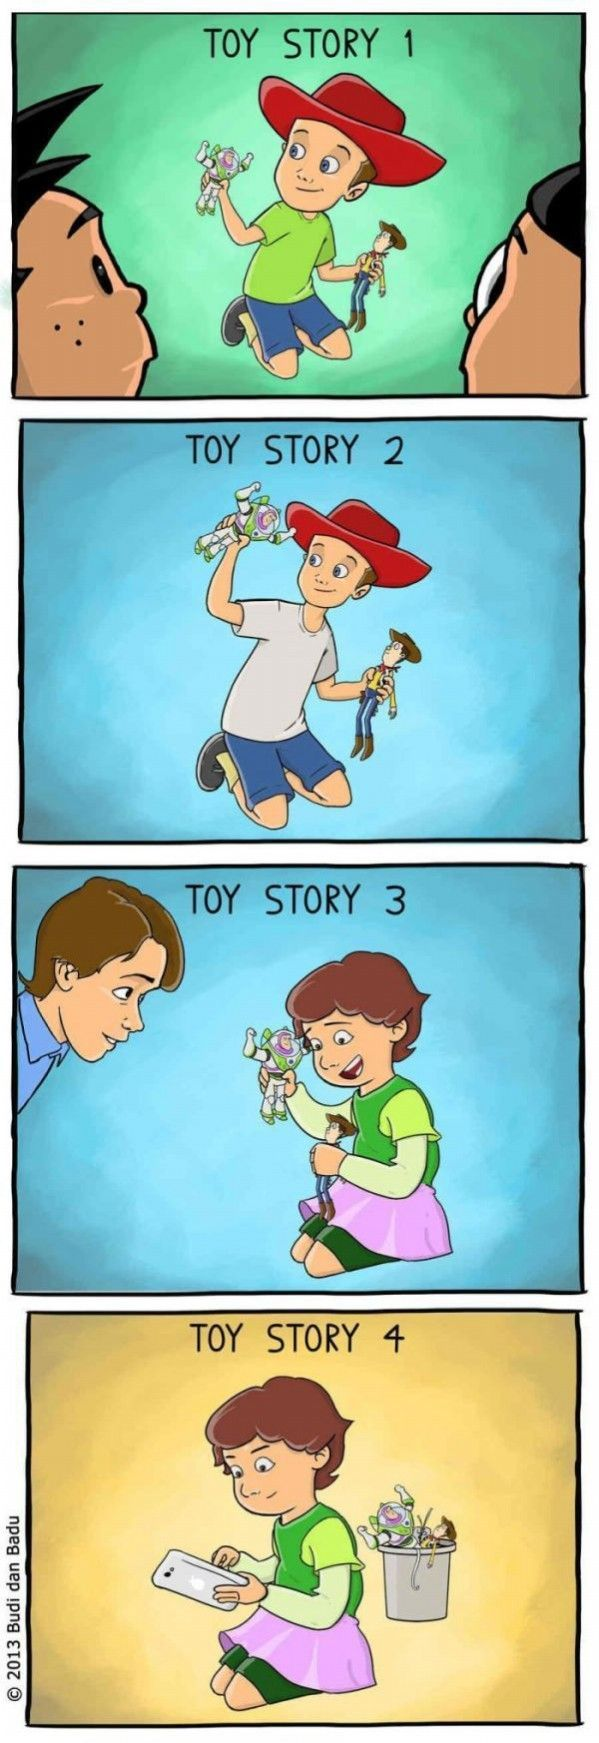 The most awesome images on the internet creative for Toy story 5 portada